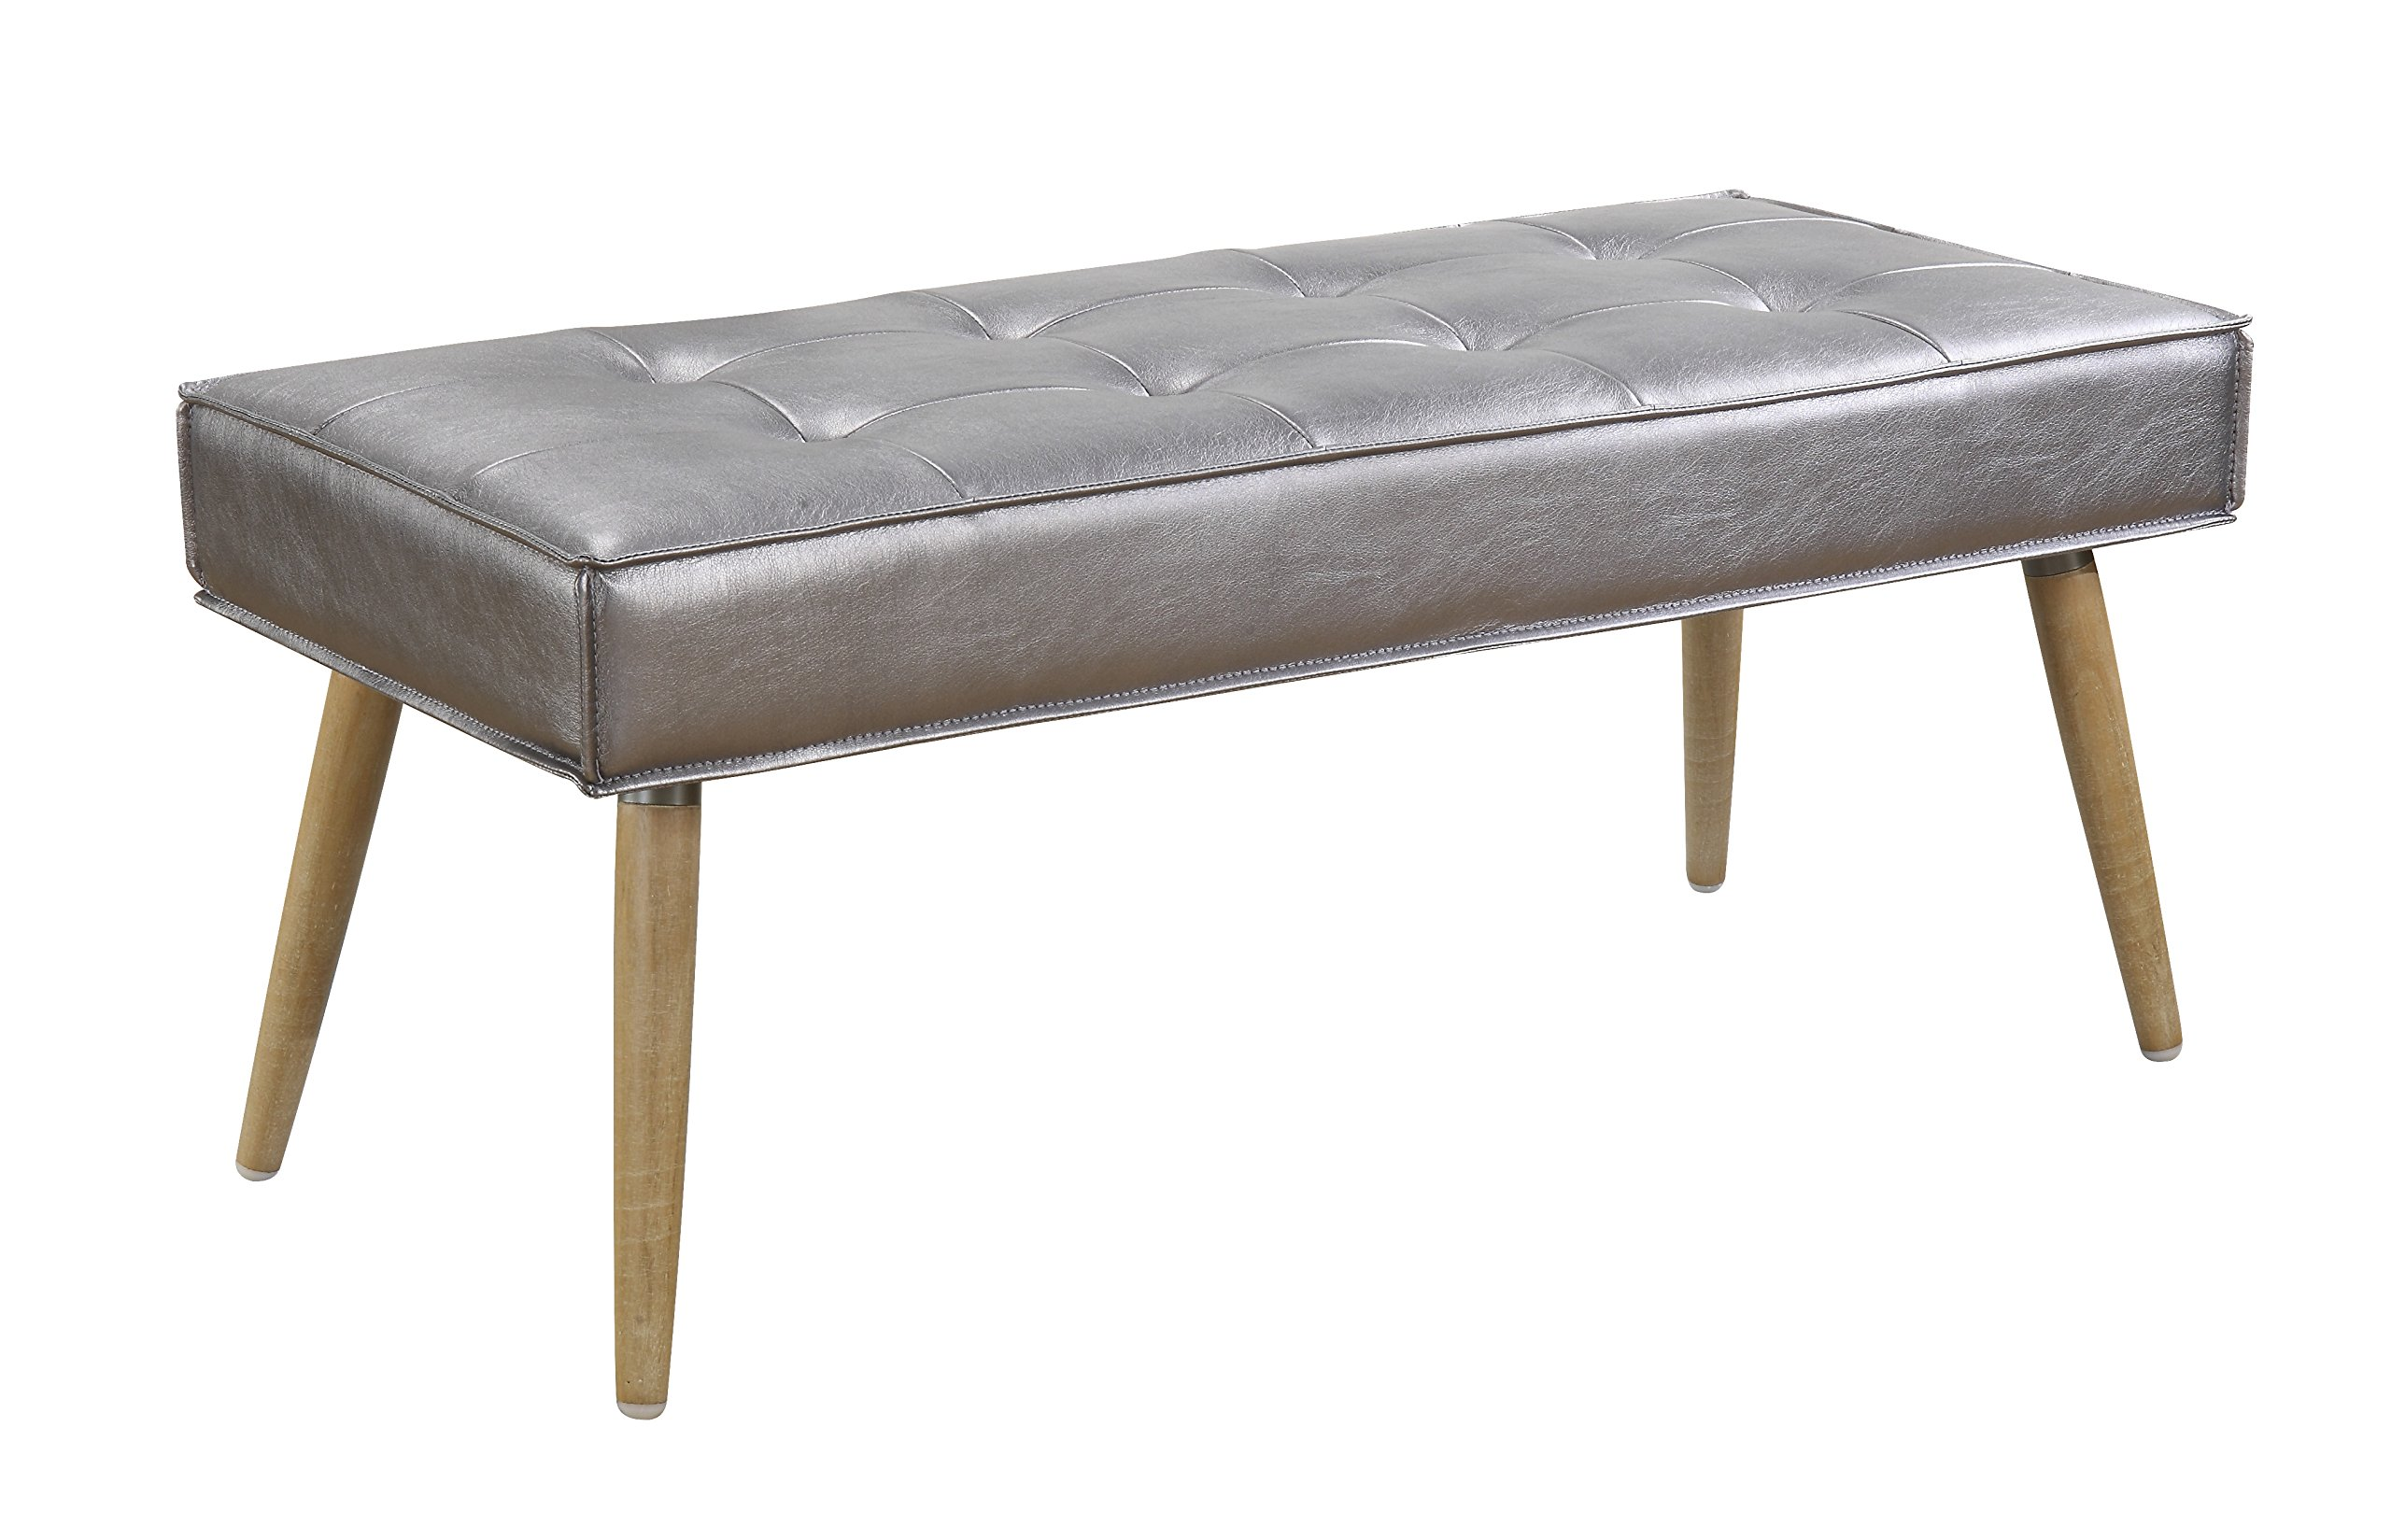 AVE SIX Amity Wooden Leg and Tufted Seat Bench with Piping, Sizzle Pewter